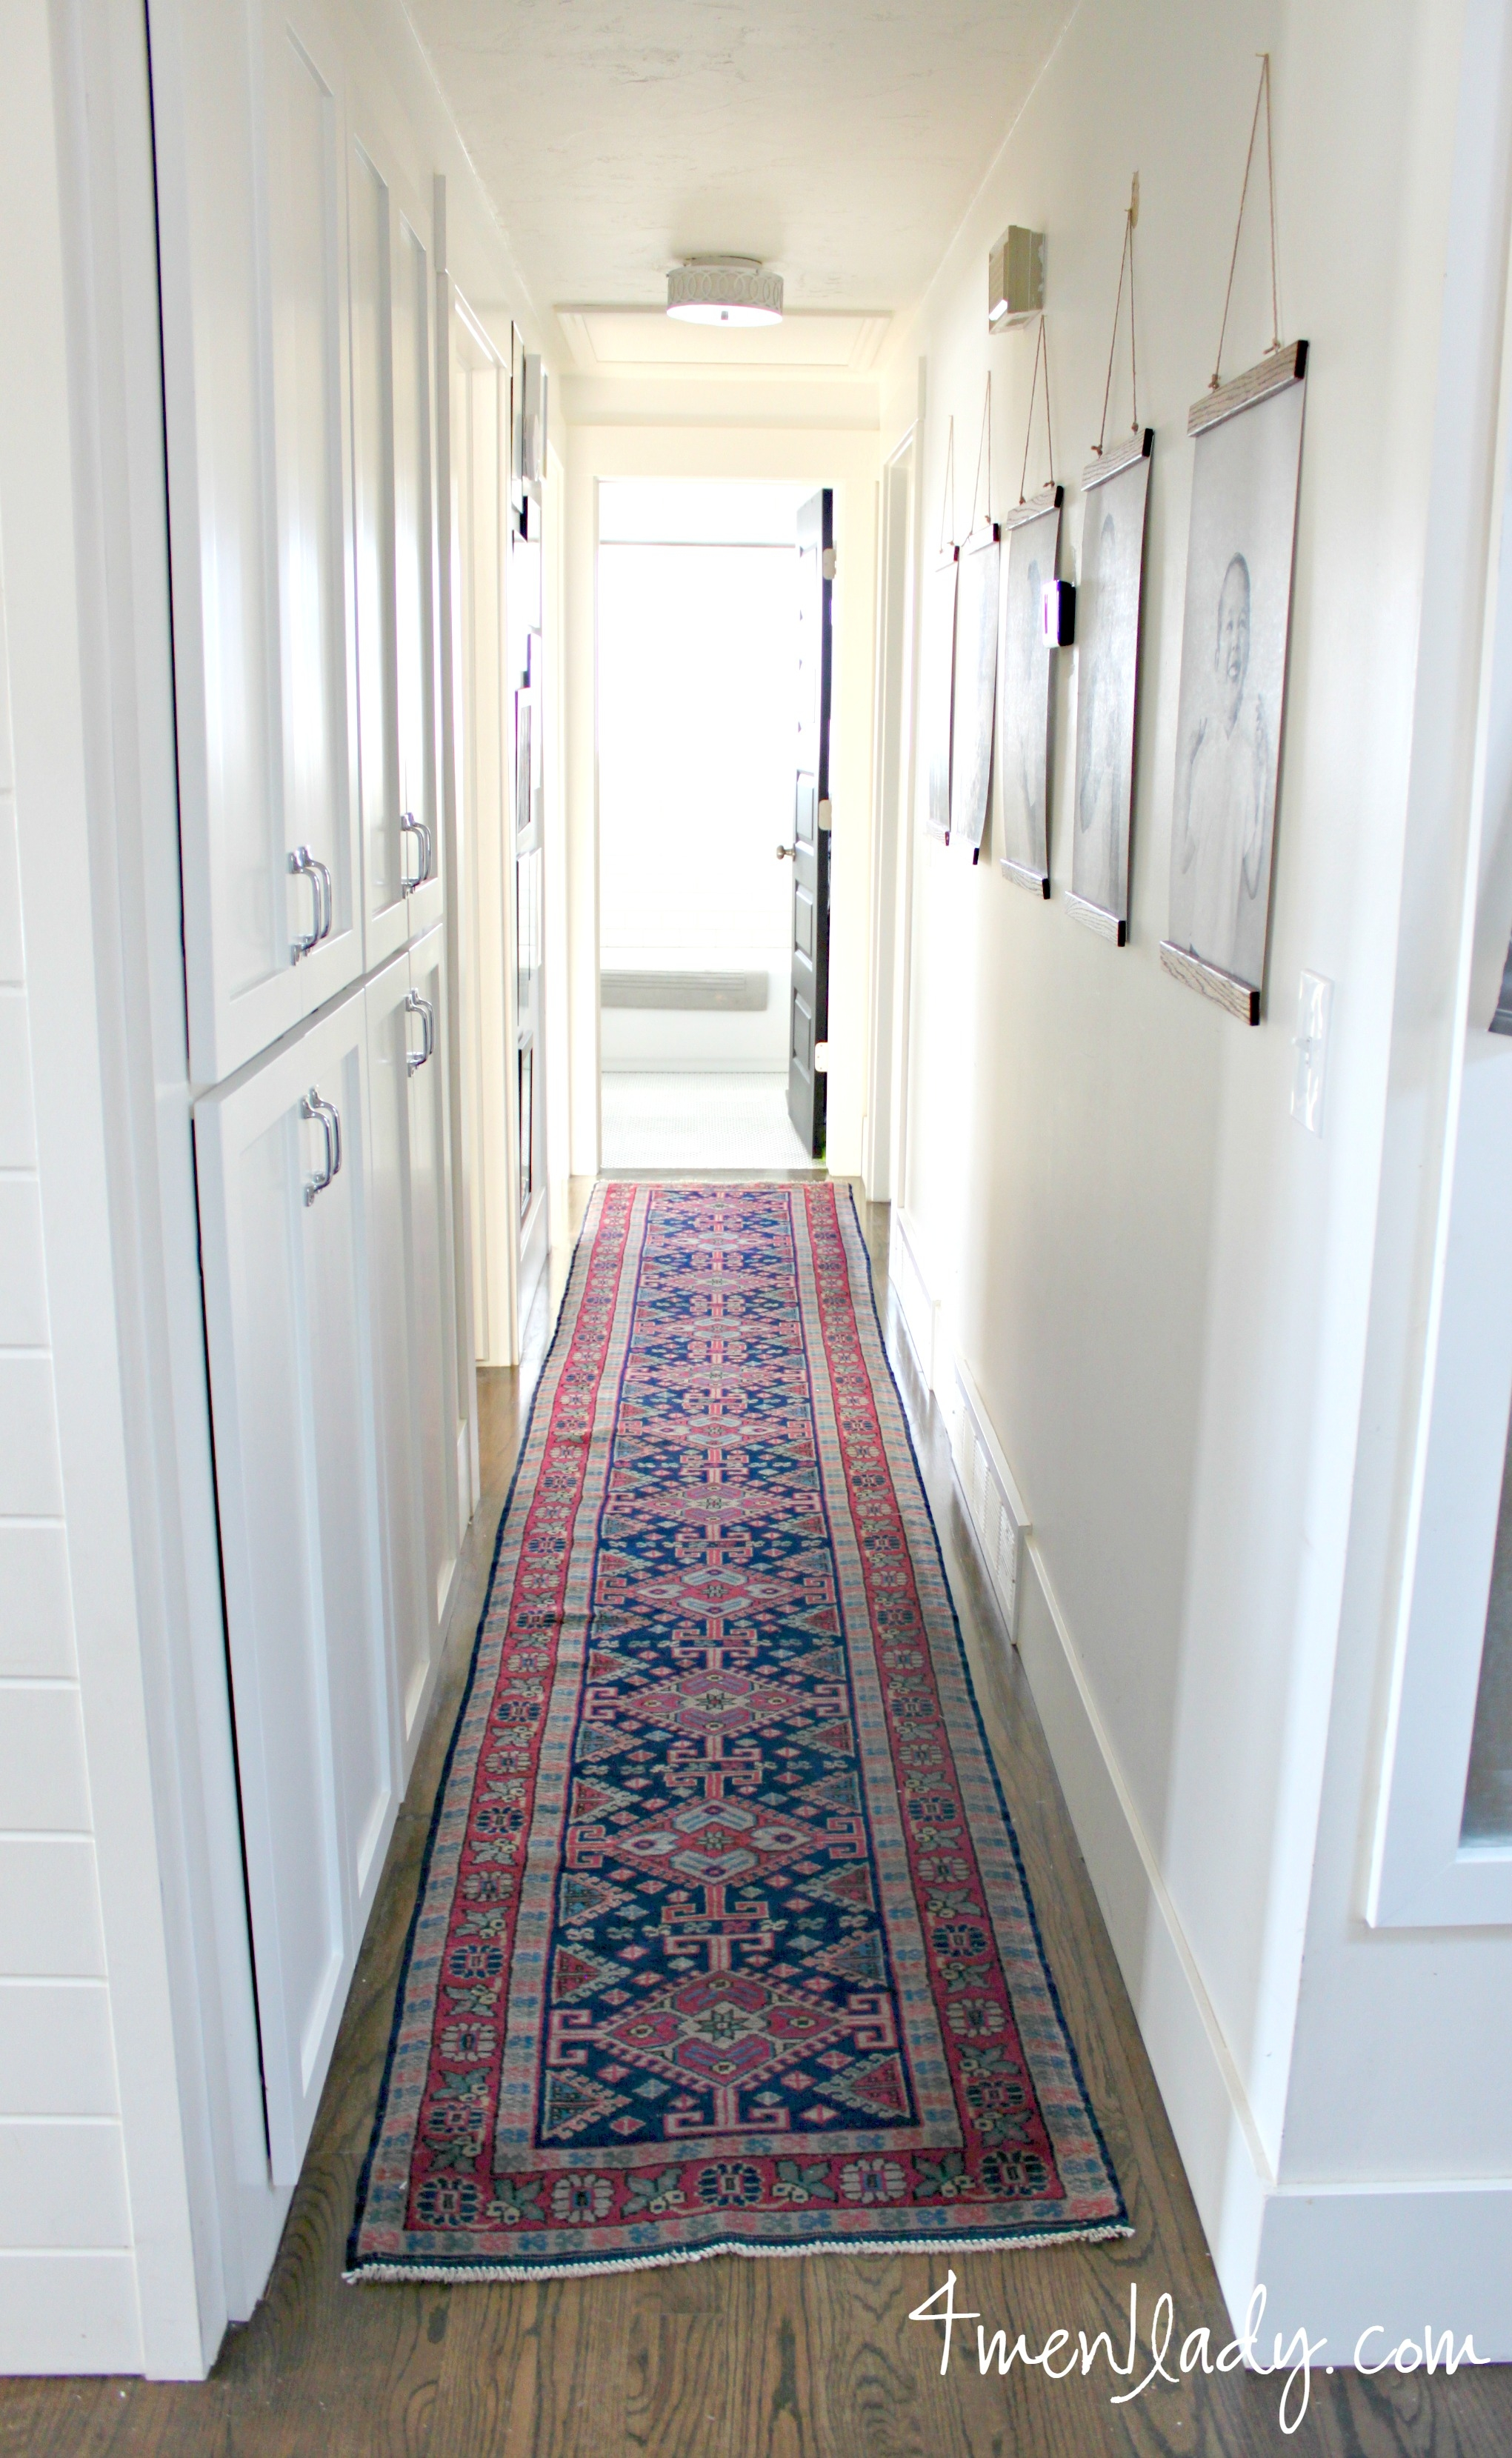 Flooring Lovely Hallway Runners For Floor Decor Idea With Regard To Extra Long Runners For Hallway (View 13 of 20)